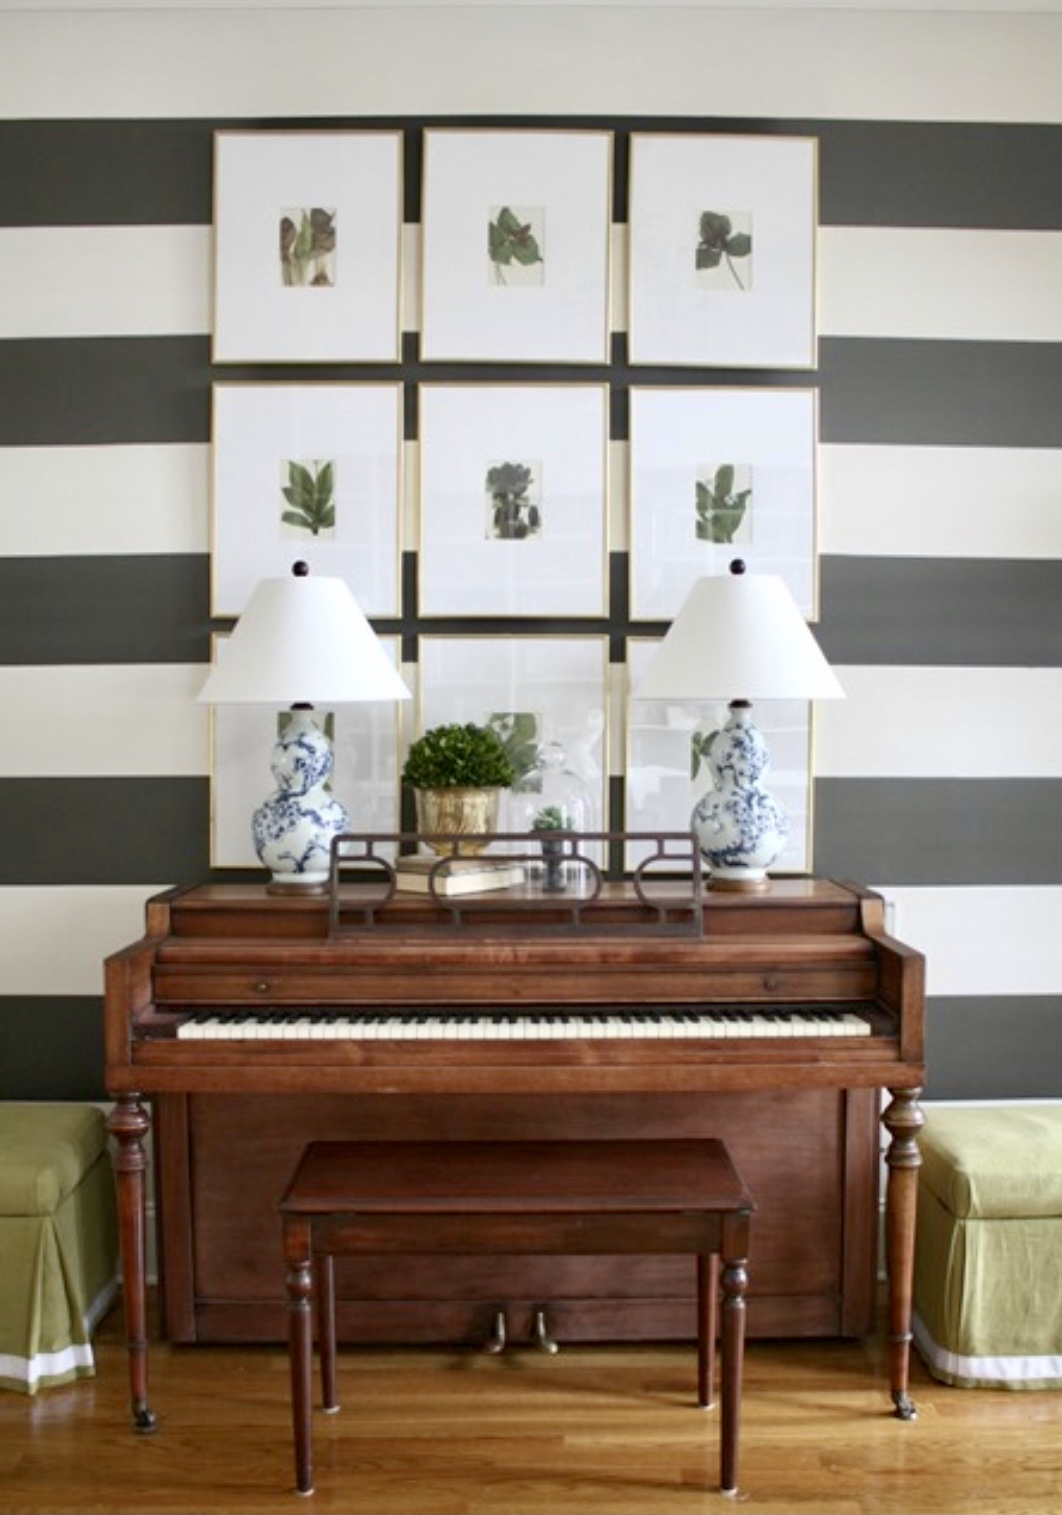 decorating-over-piano-grid